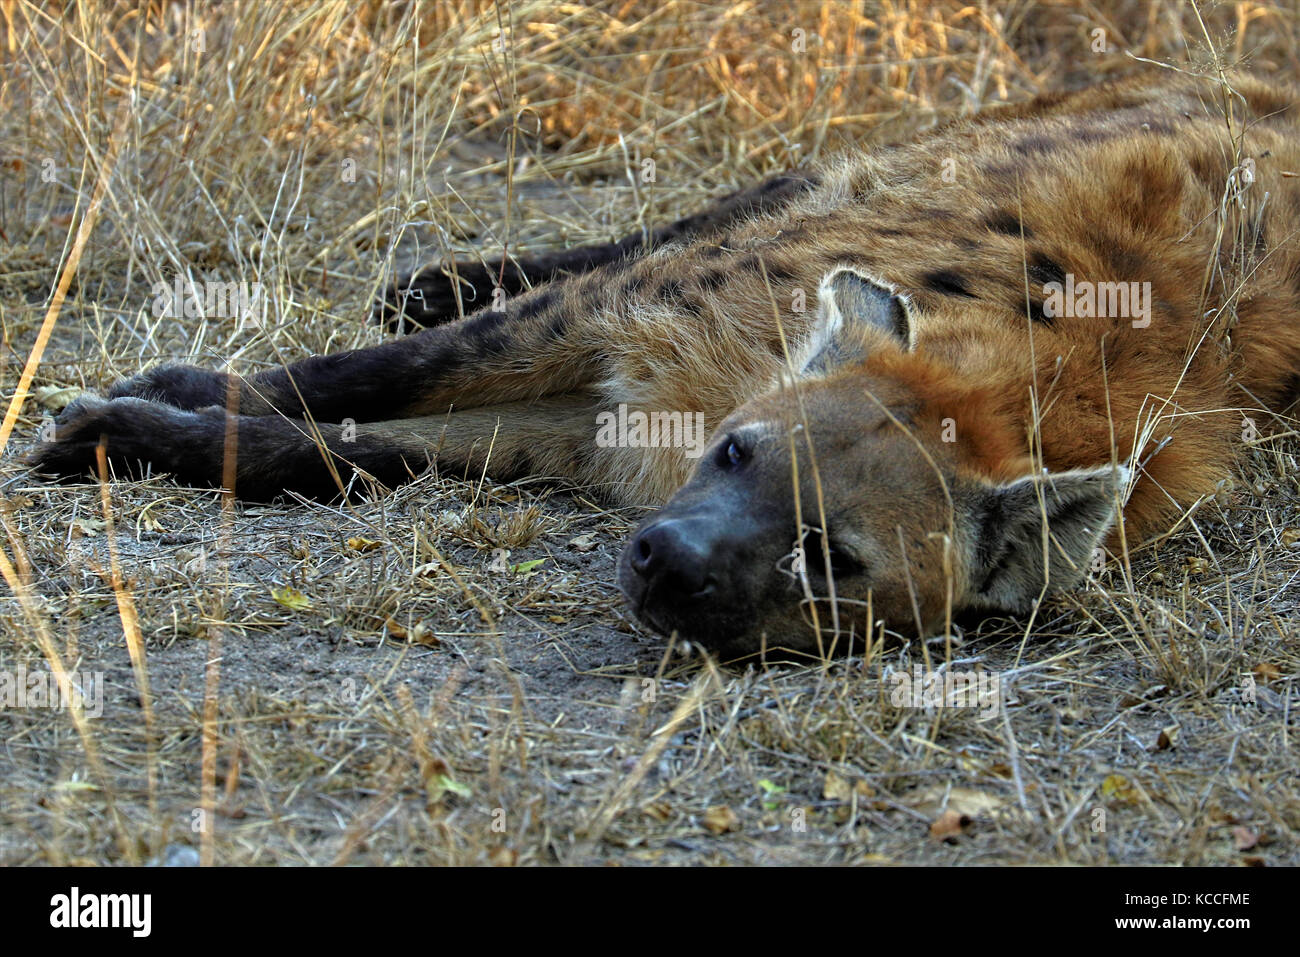 Hyena in the Kruger National Park in South Africa - Stock Image